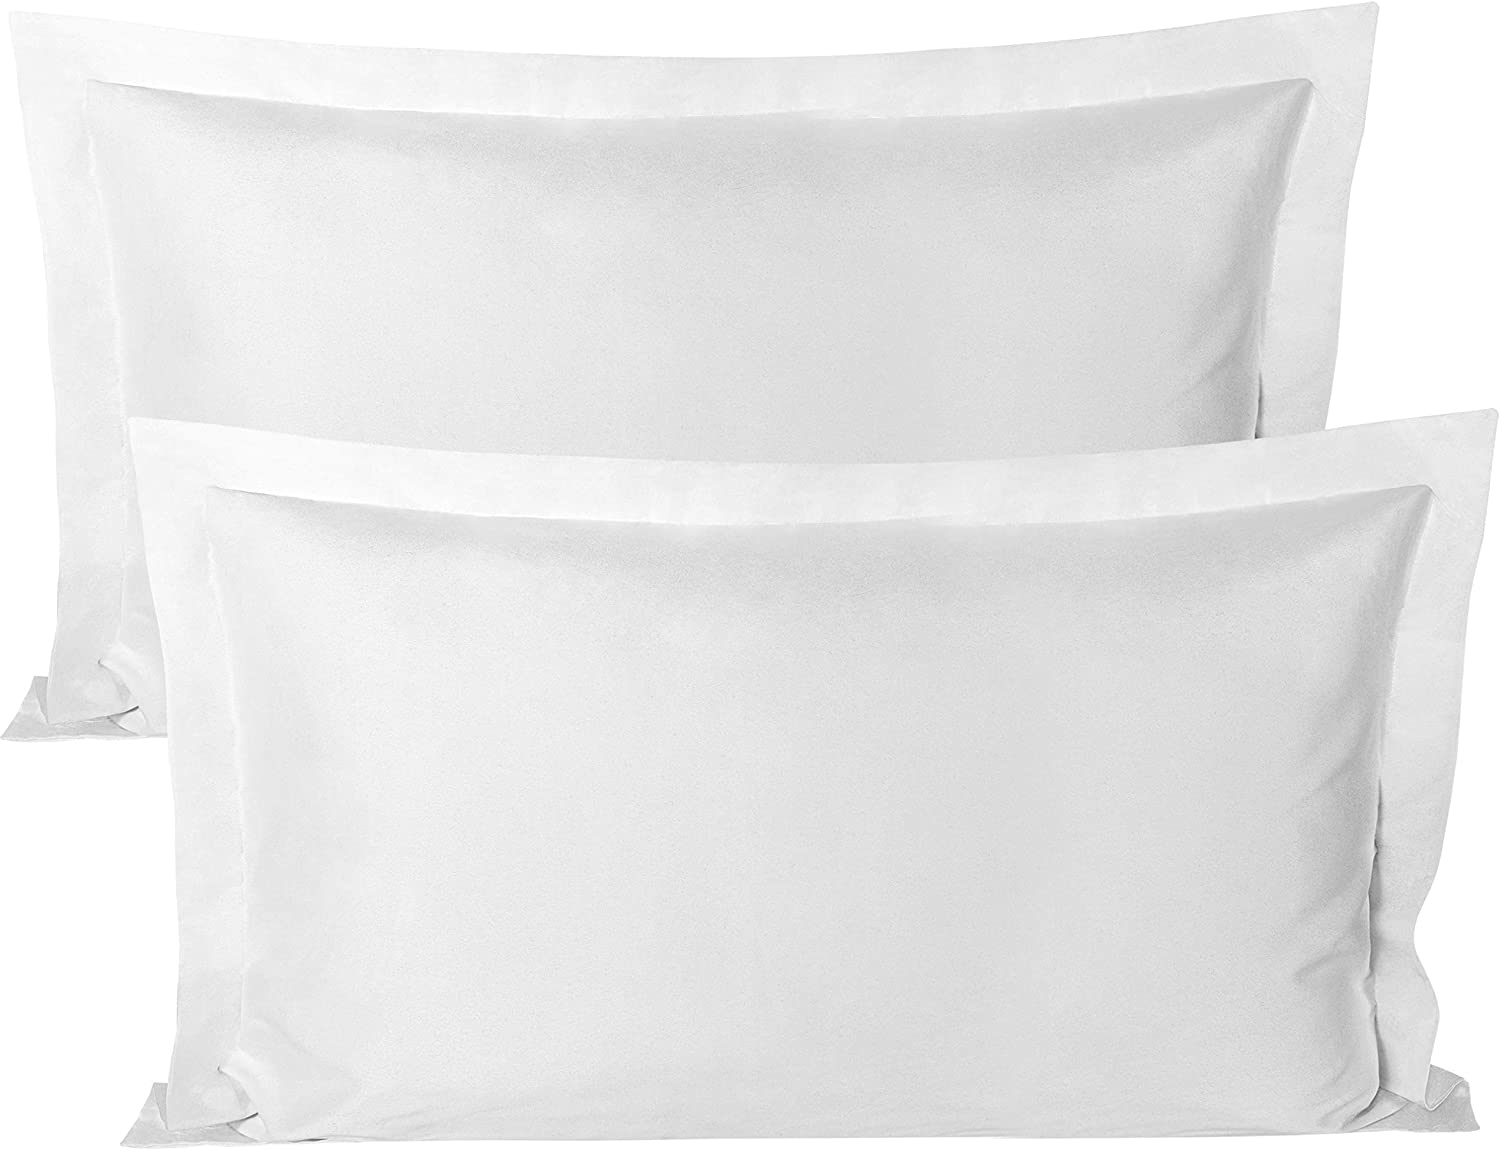 BEDSUM Microfiber Pillow Shams Set of 2, Ultra Soft and Wrinkle Resistant, King, White